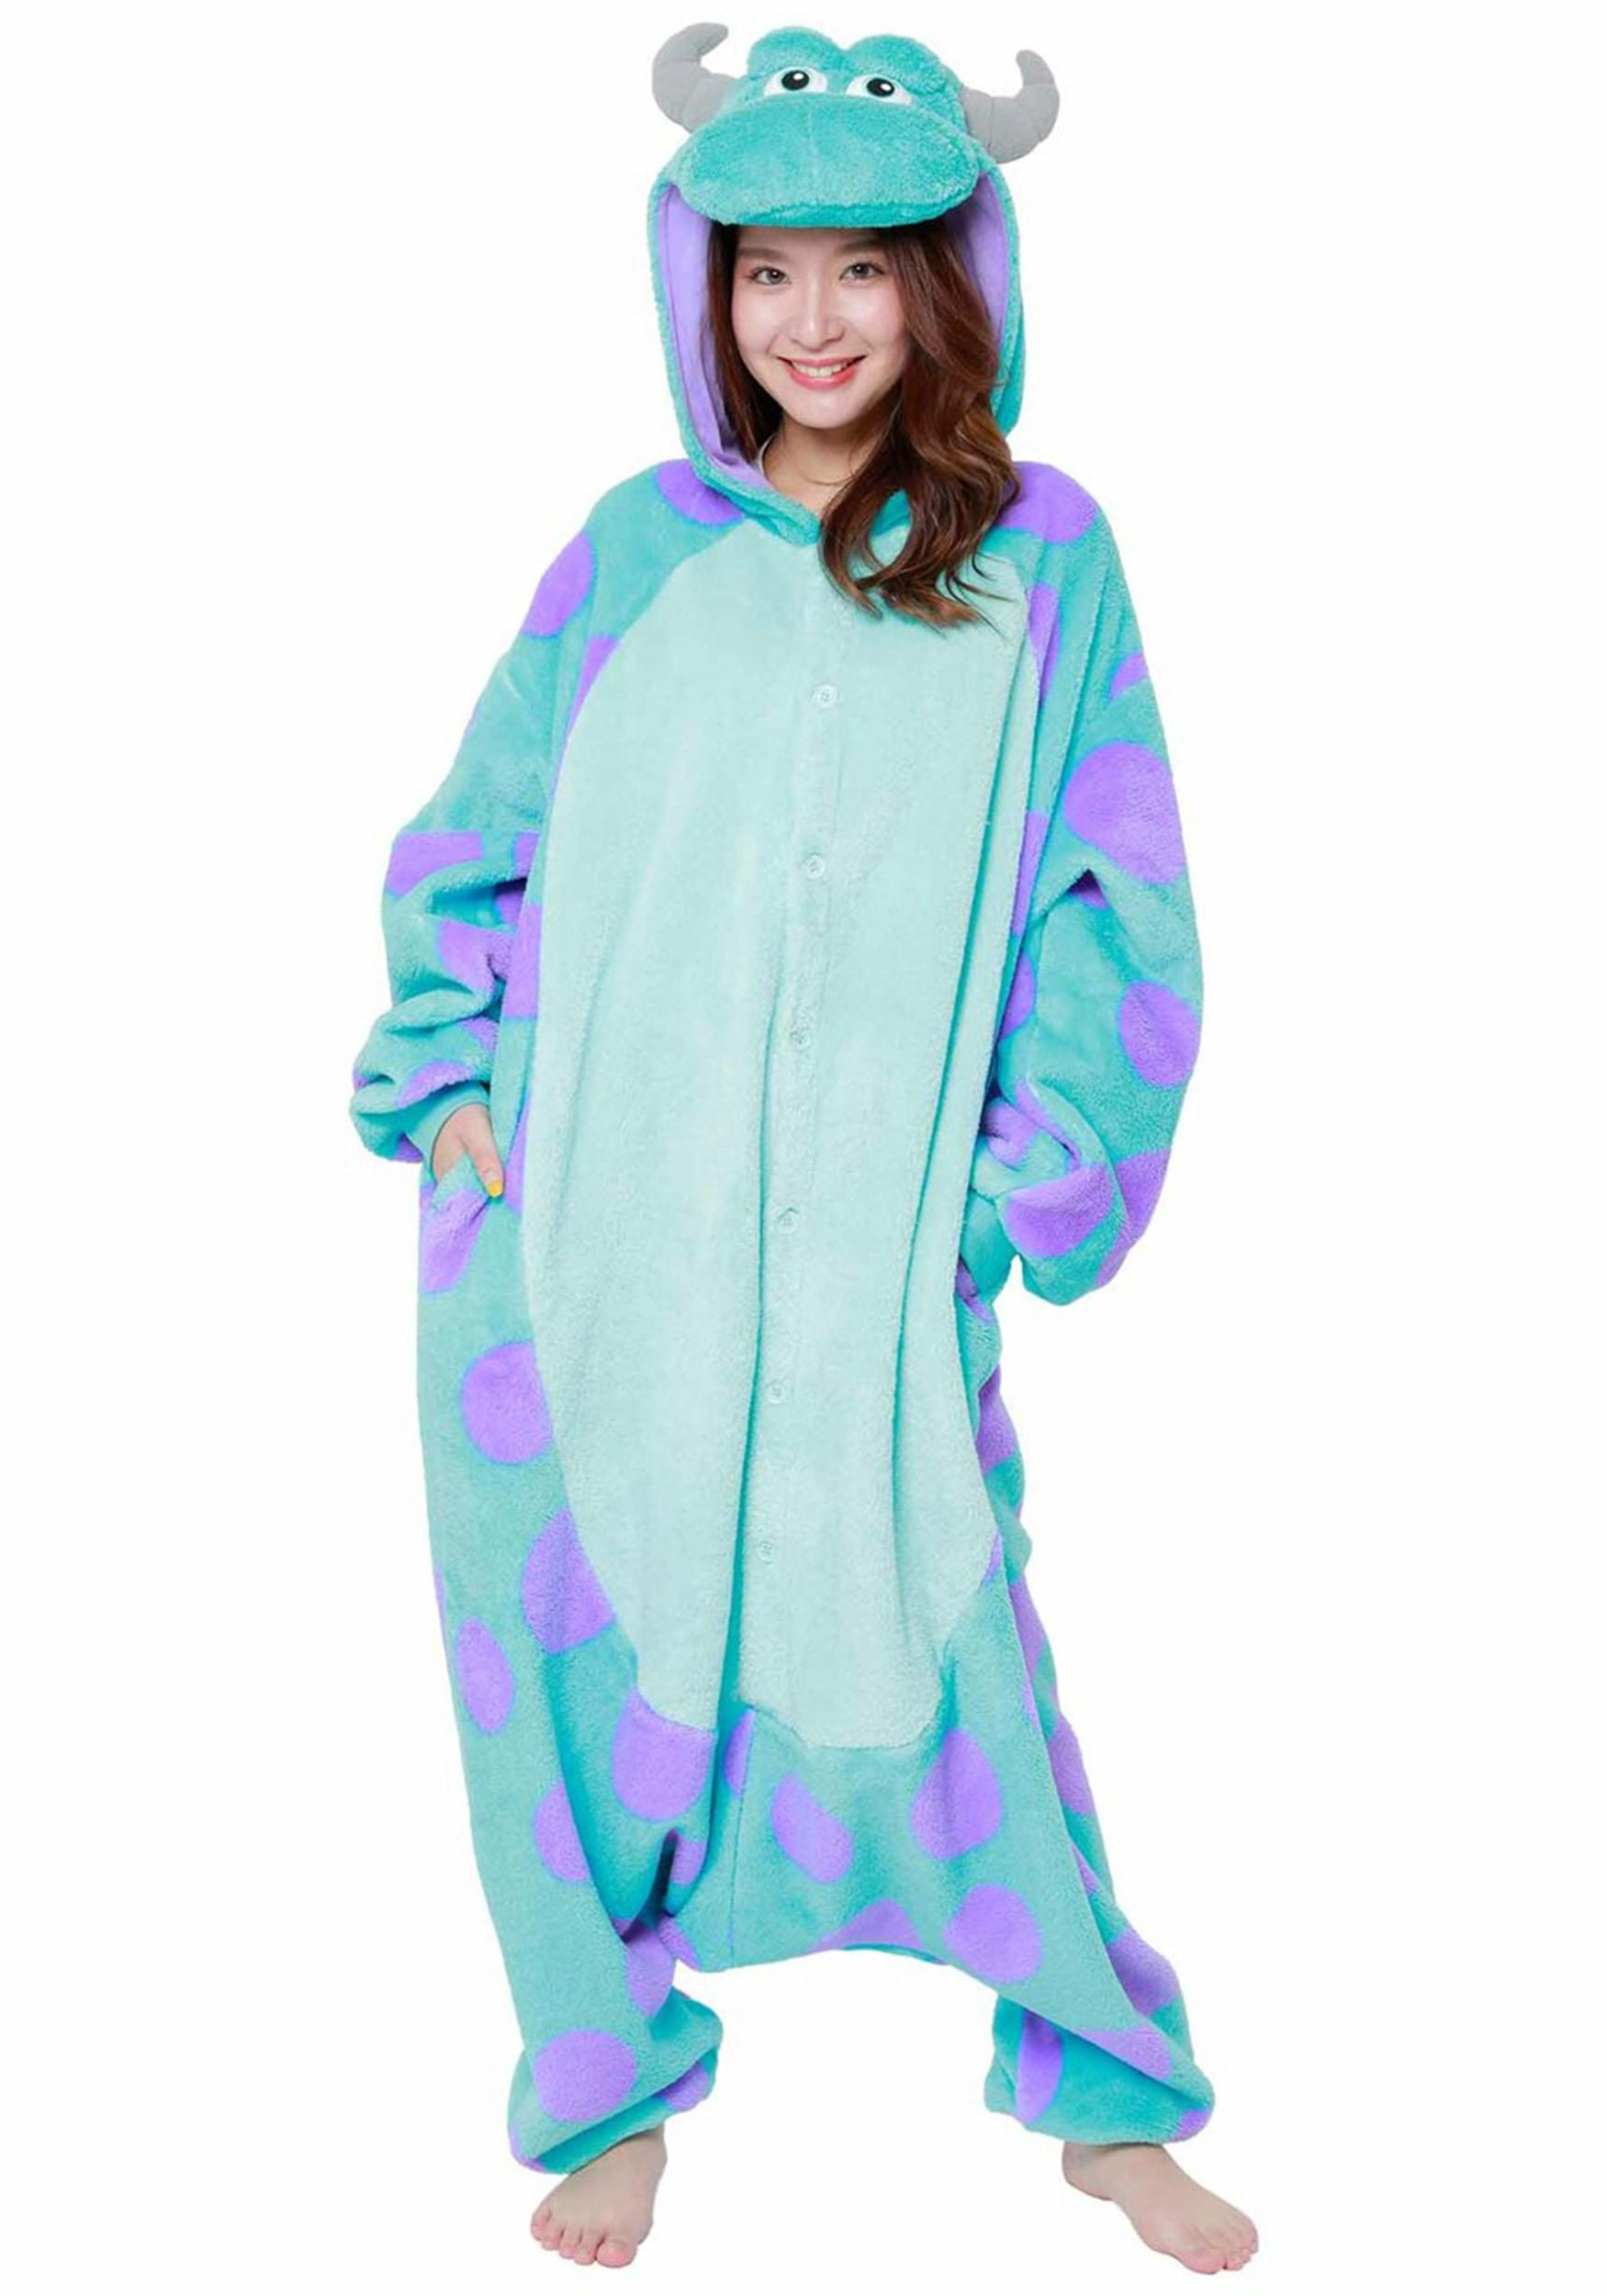 Trouble is this Chesire Cat pajama costume's middle name. Actually, we're not sure if this licensed Alice in Wonderland pajama set has a middle name, but trouble probably would be its middle name.